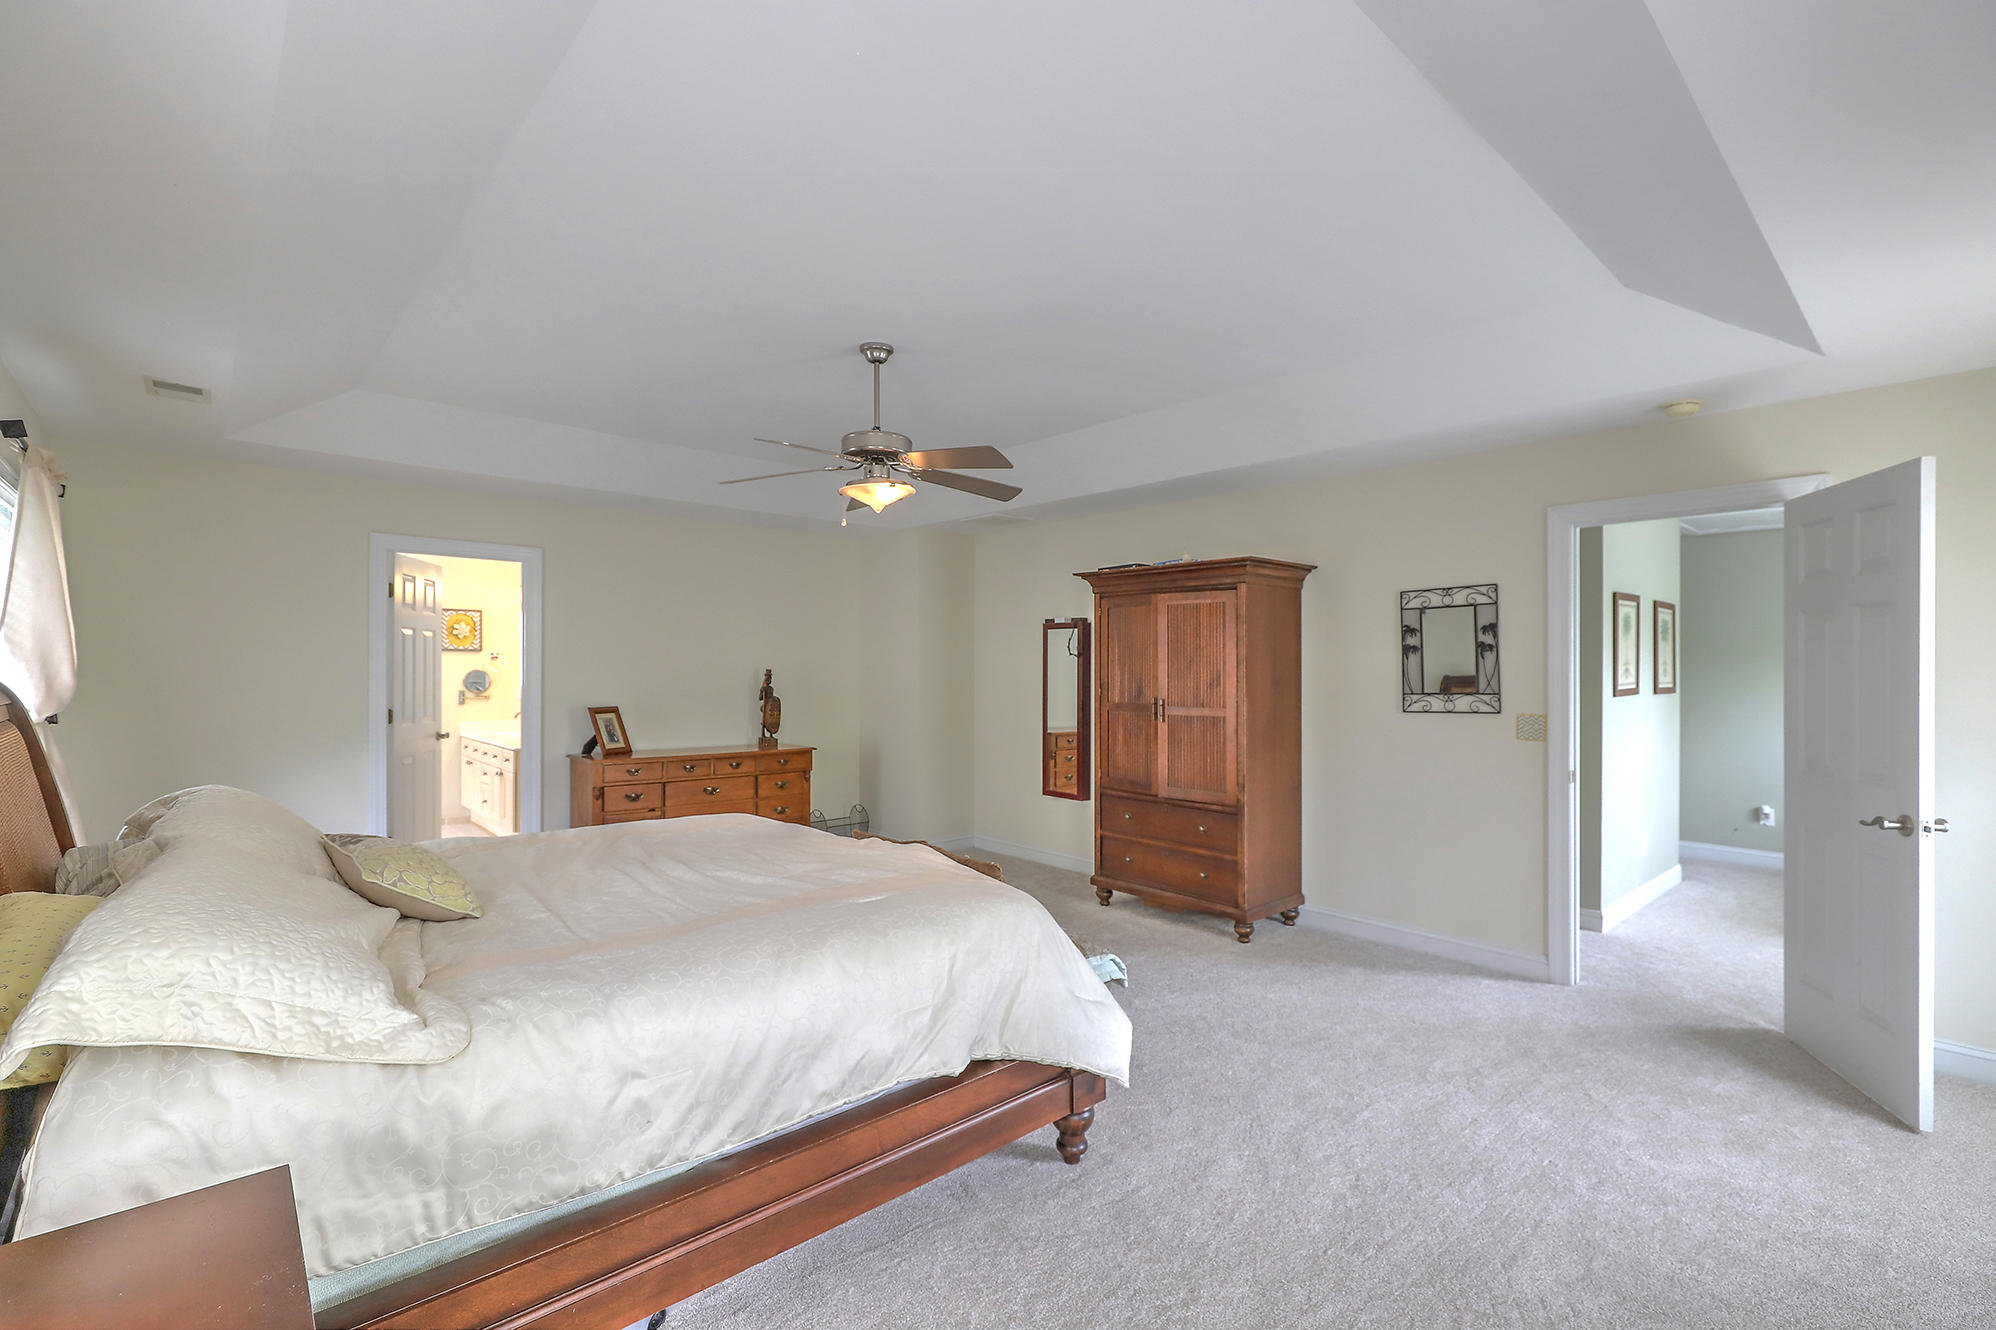 Rivertowne On The Wando Homes For Sale - 2182 Sandy Point Lane, Mount Pleasant, SC - 15